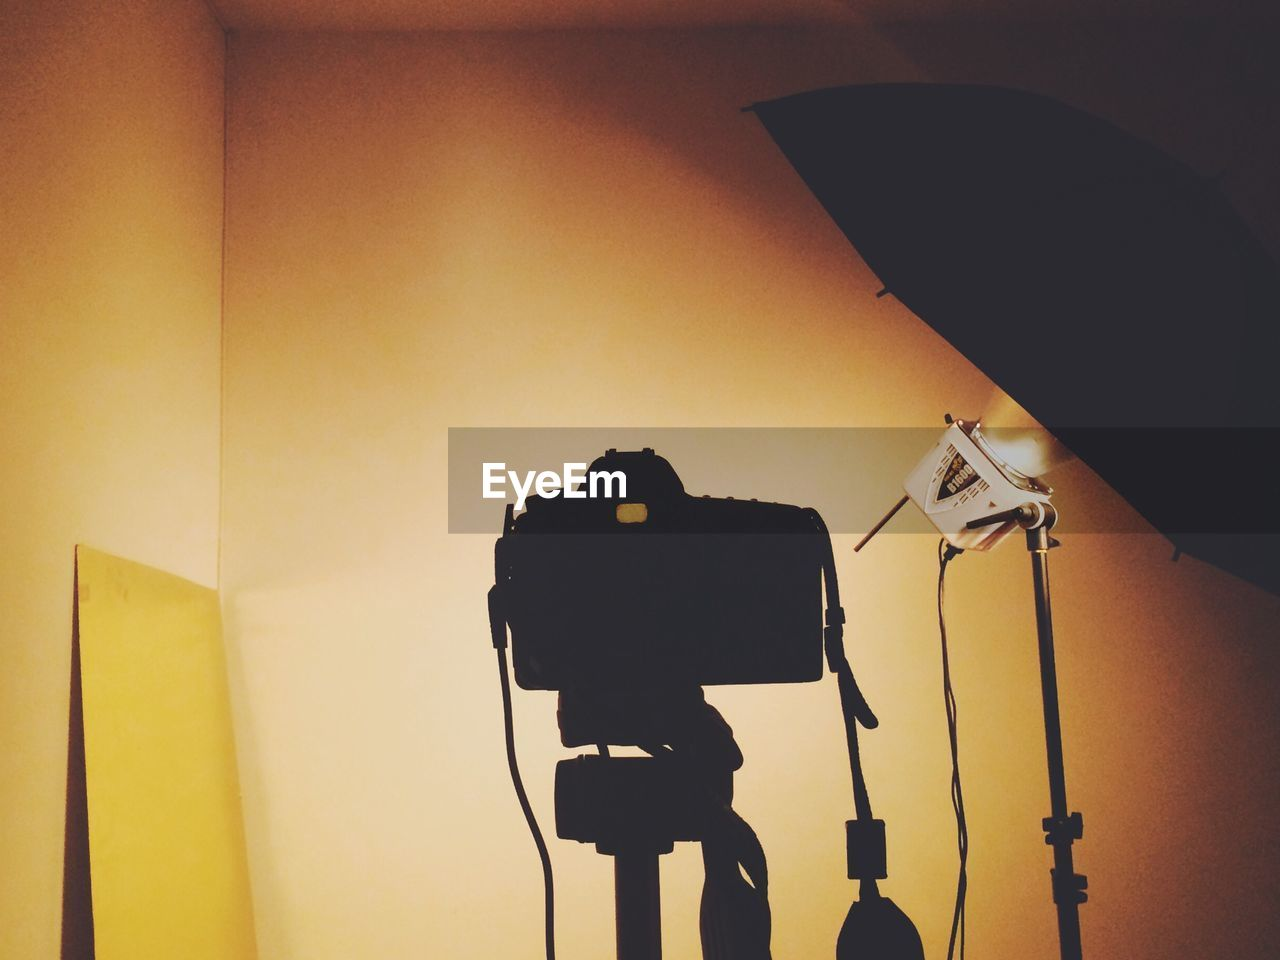 Professional camera against yellow walls